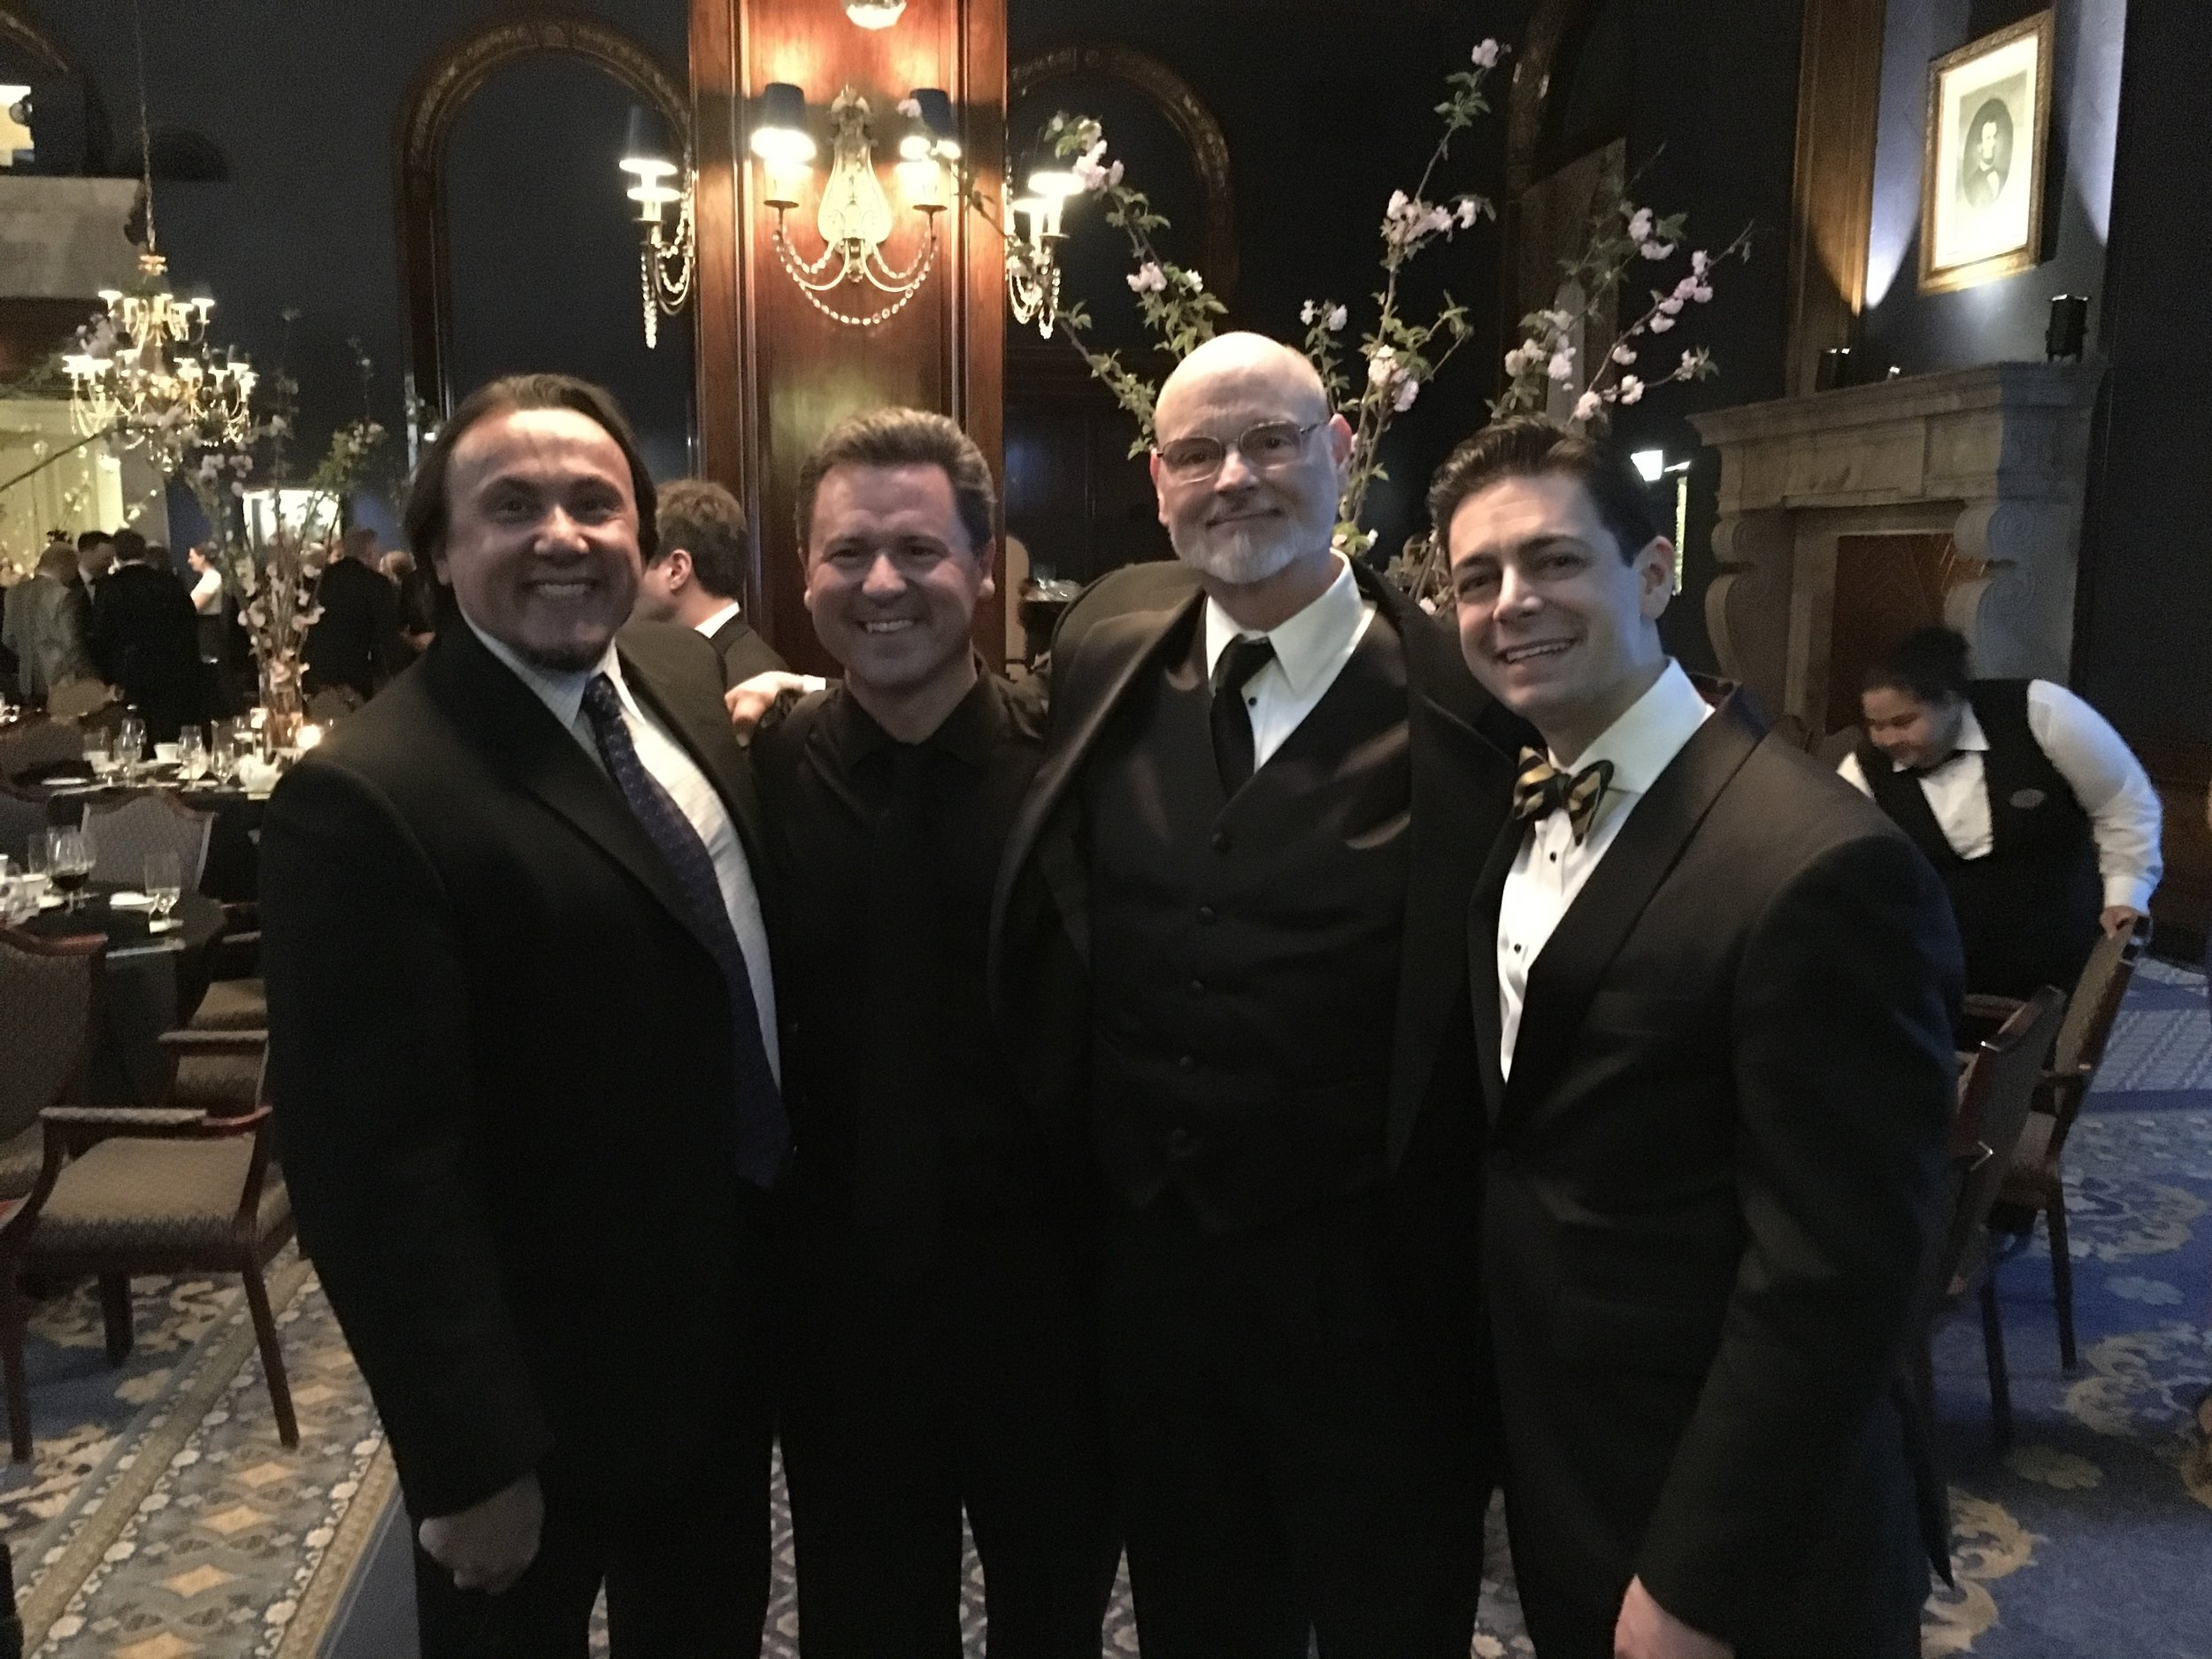 Joined by Michael Rivera, Carl Lawrenz, and Frank Devincentis at the Union League Club's Luminarts Gala in Chicago, IL